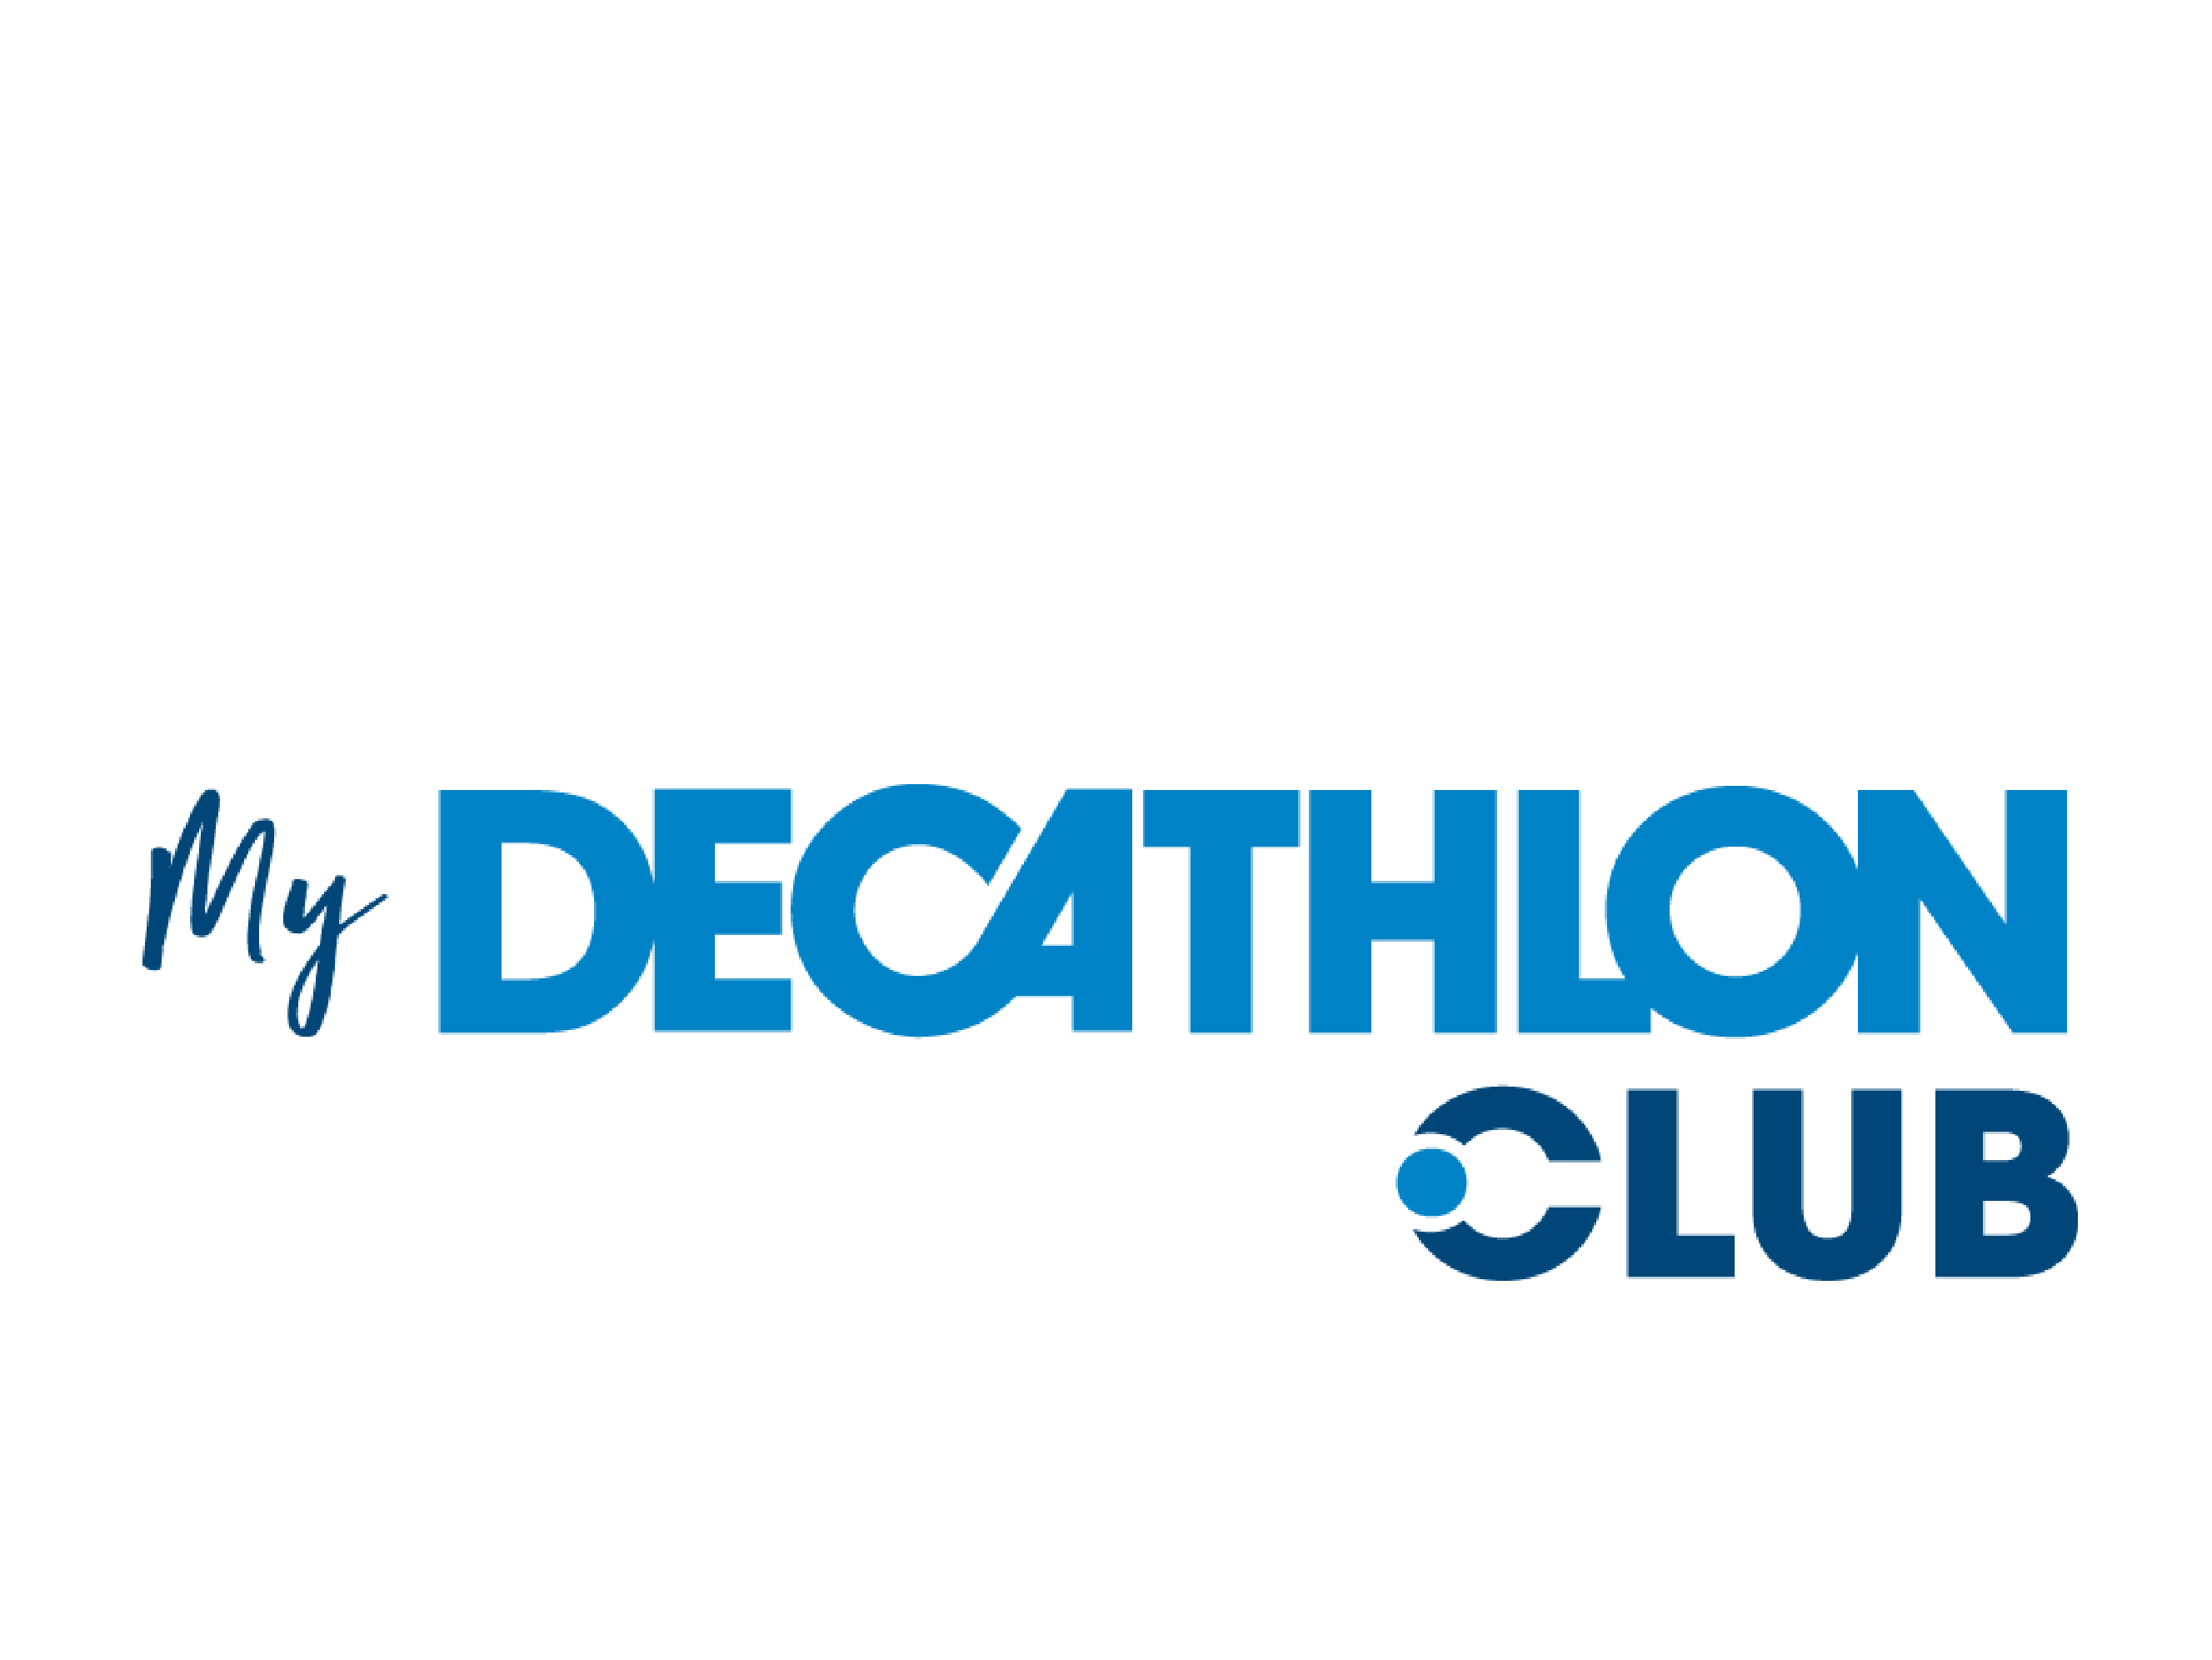 decathlon-club-text